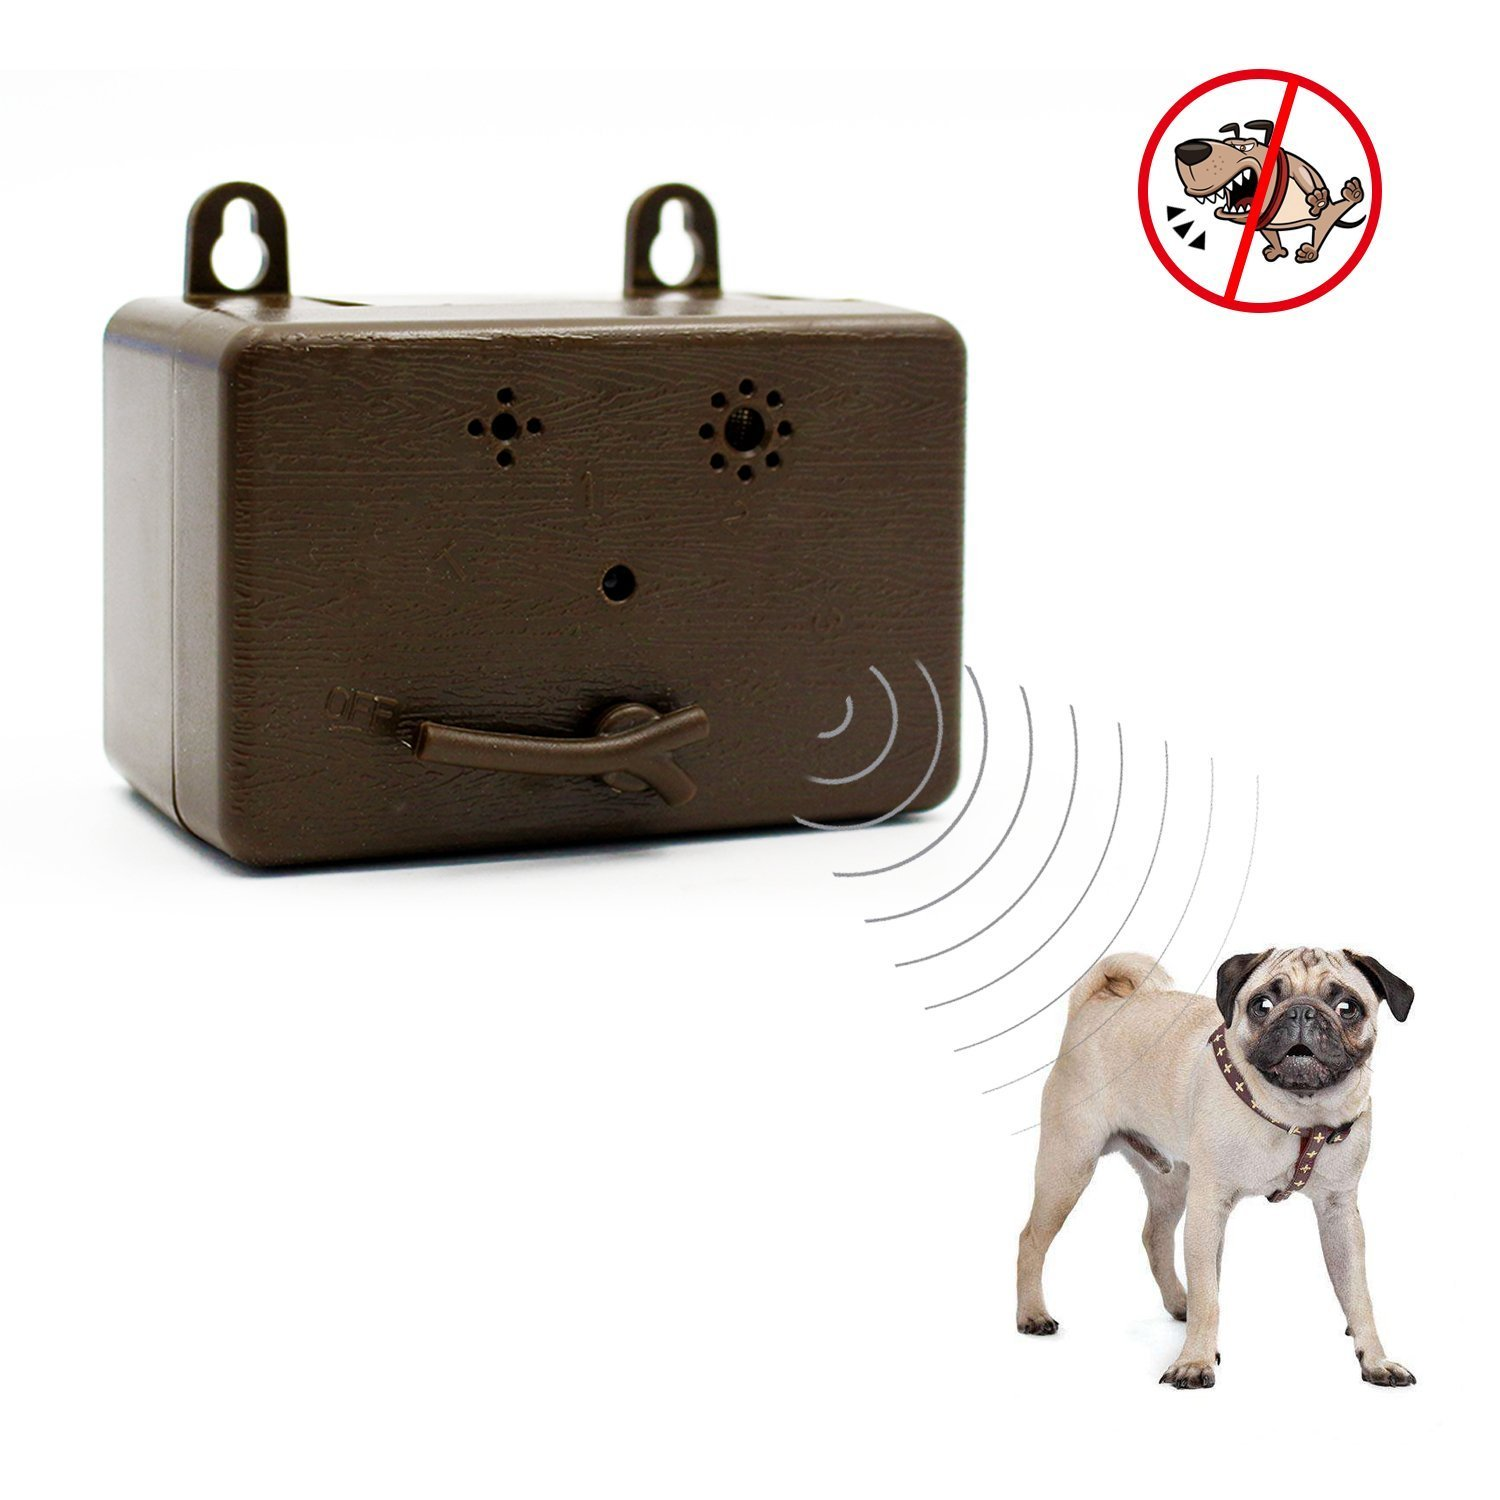 Harmless Ultrasonic Dog Bark Control Devices by Waterproof Outdoor Anti Dog Bark Controller, Ultrasonic Training Dog devices, Bark Stop Repeller Silence Dog Training Control Repellent